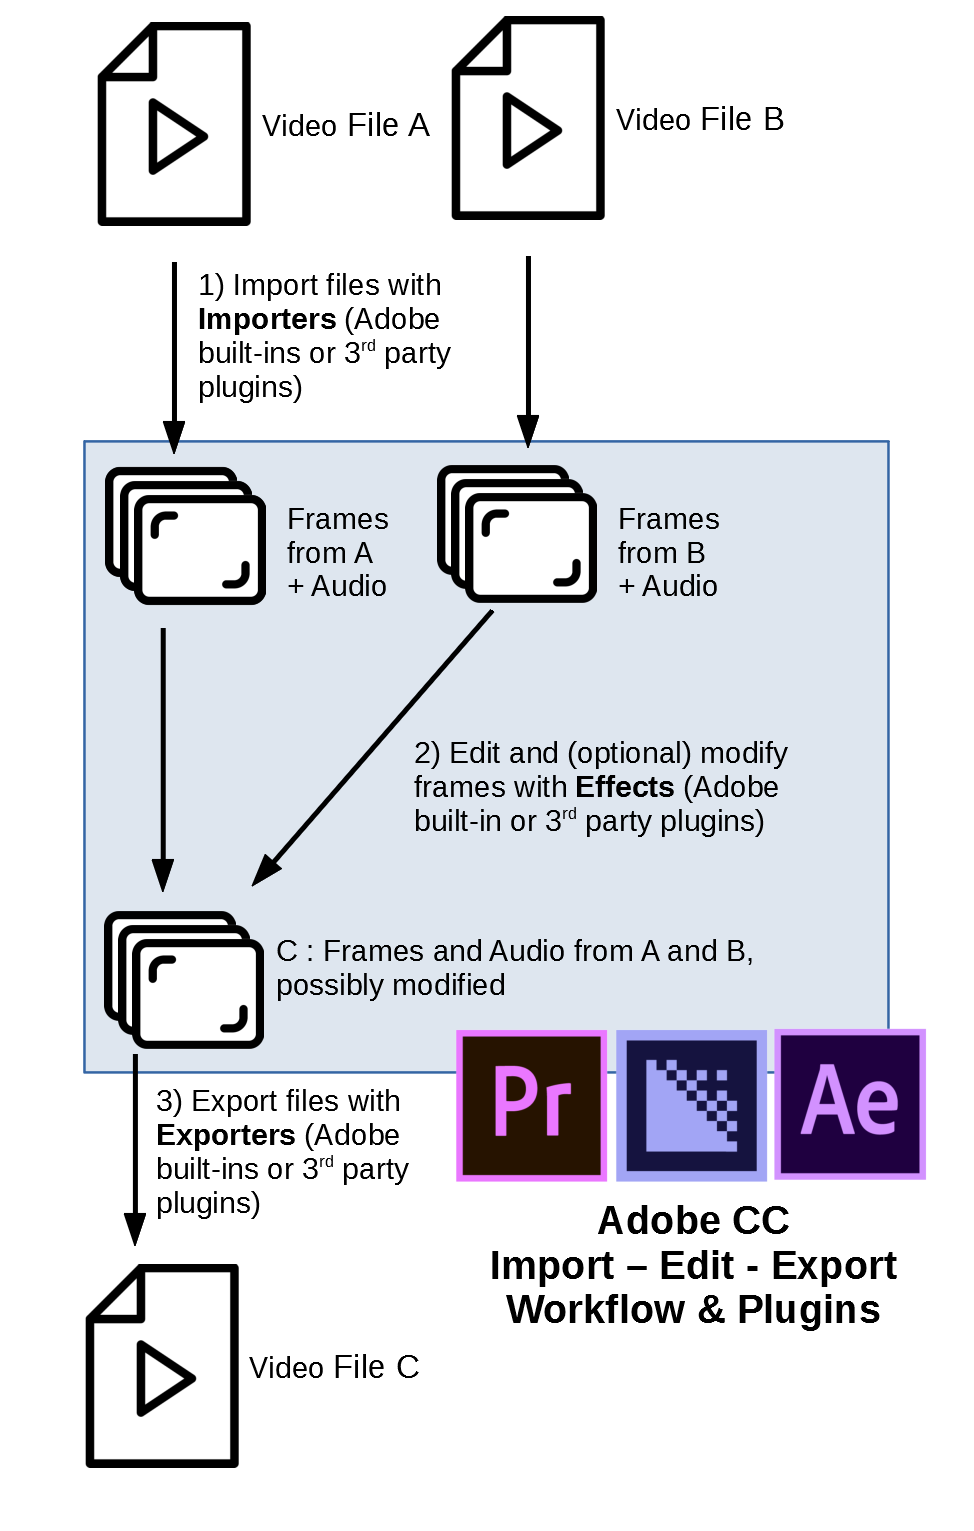 Adobe Workflow Plugins